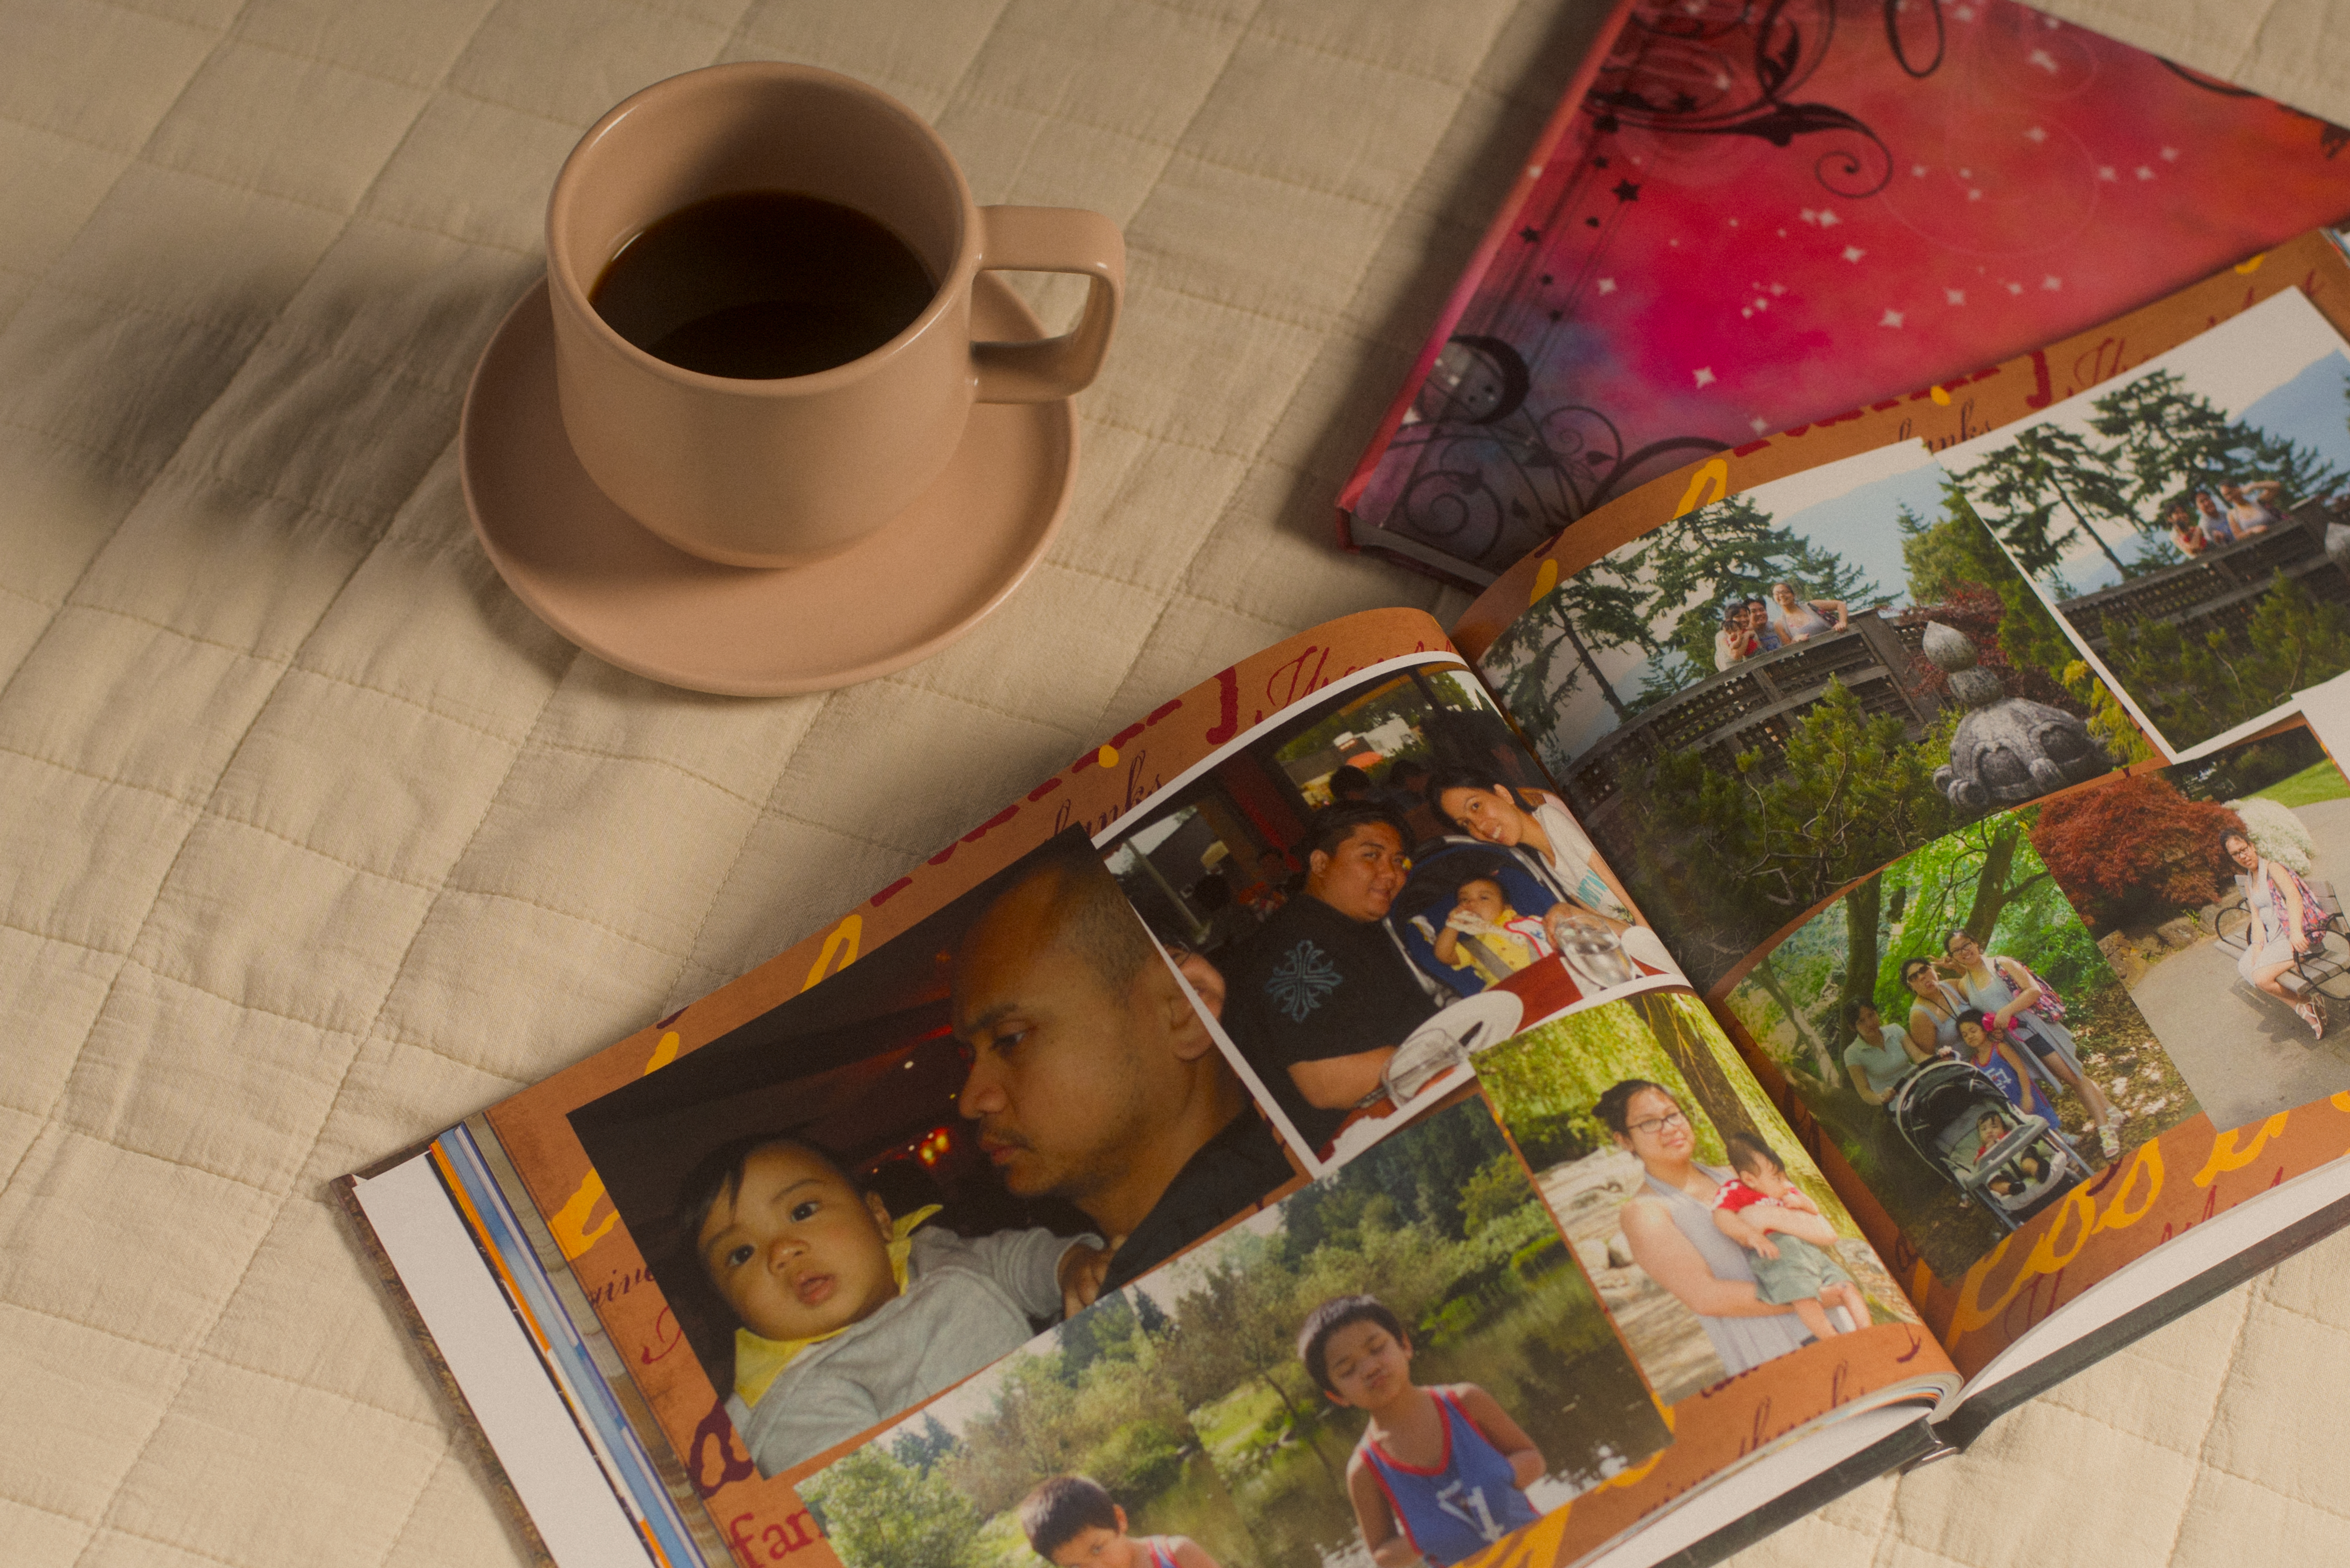 A photo album filled with old family photos sits on a tan cloth with a cup of coffee nearby.